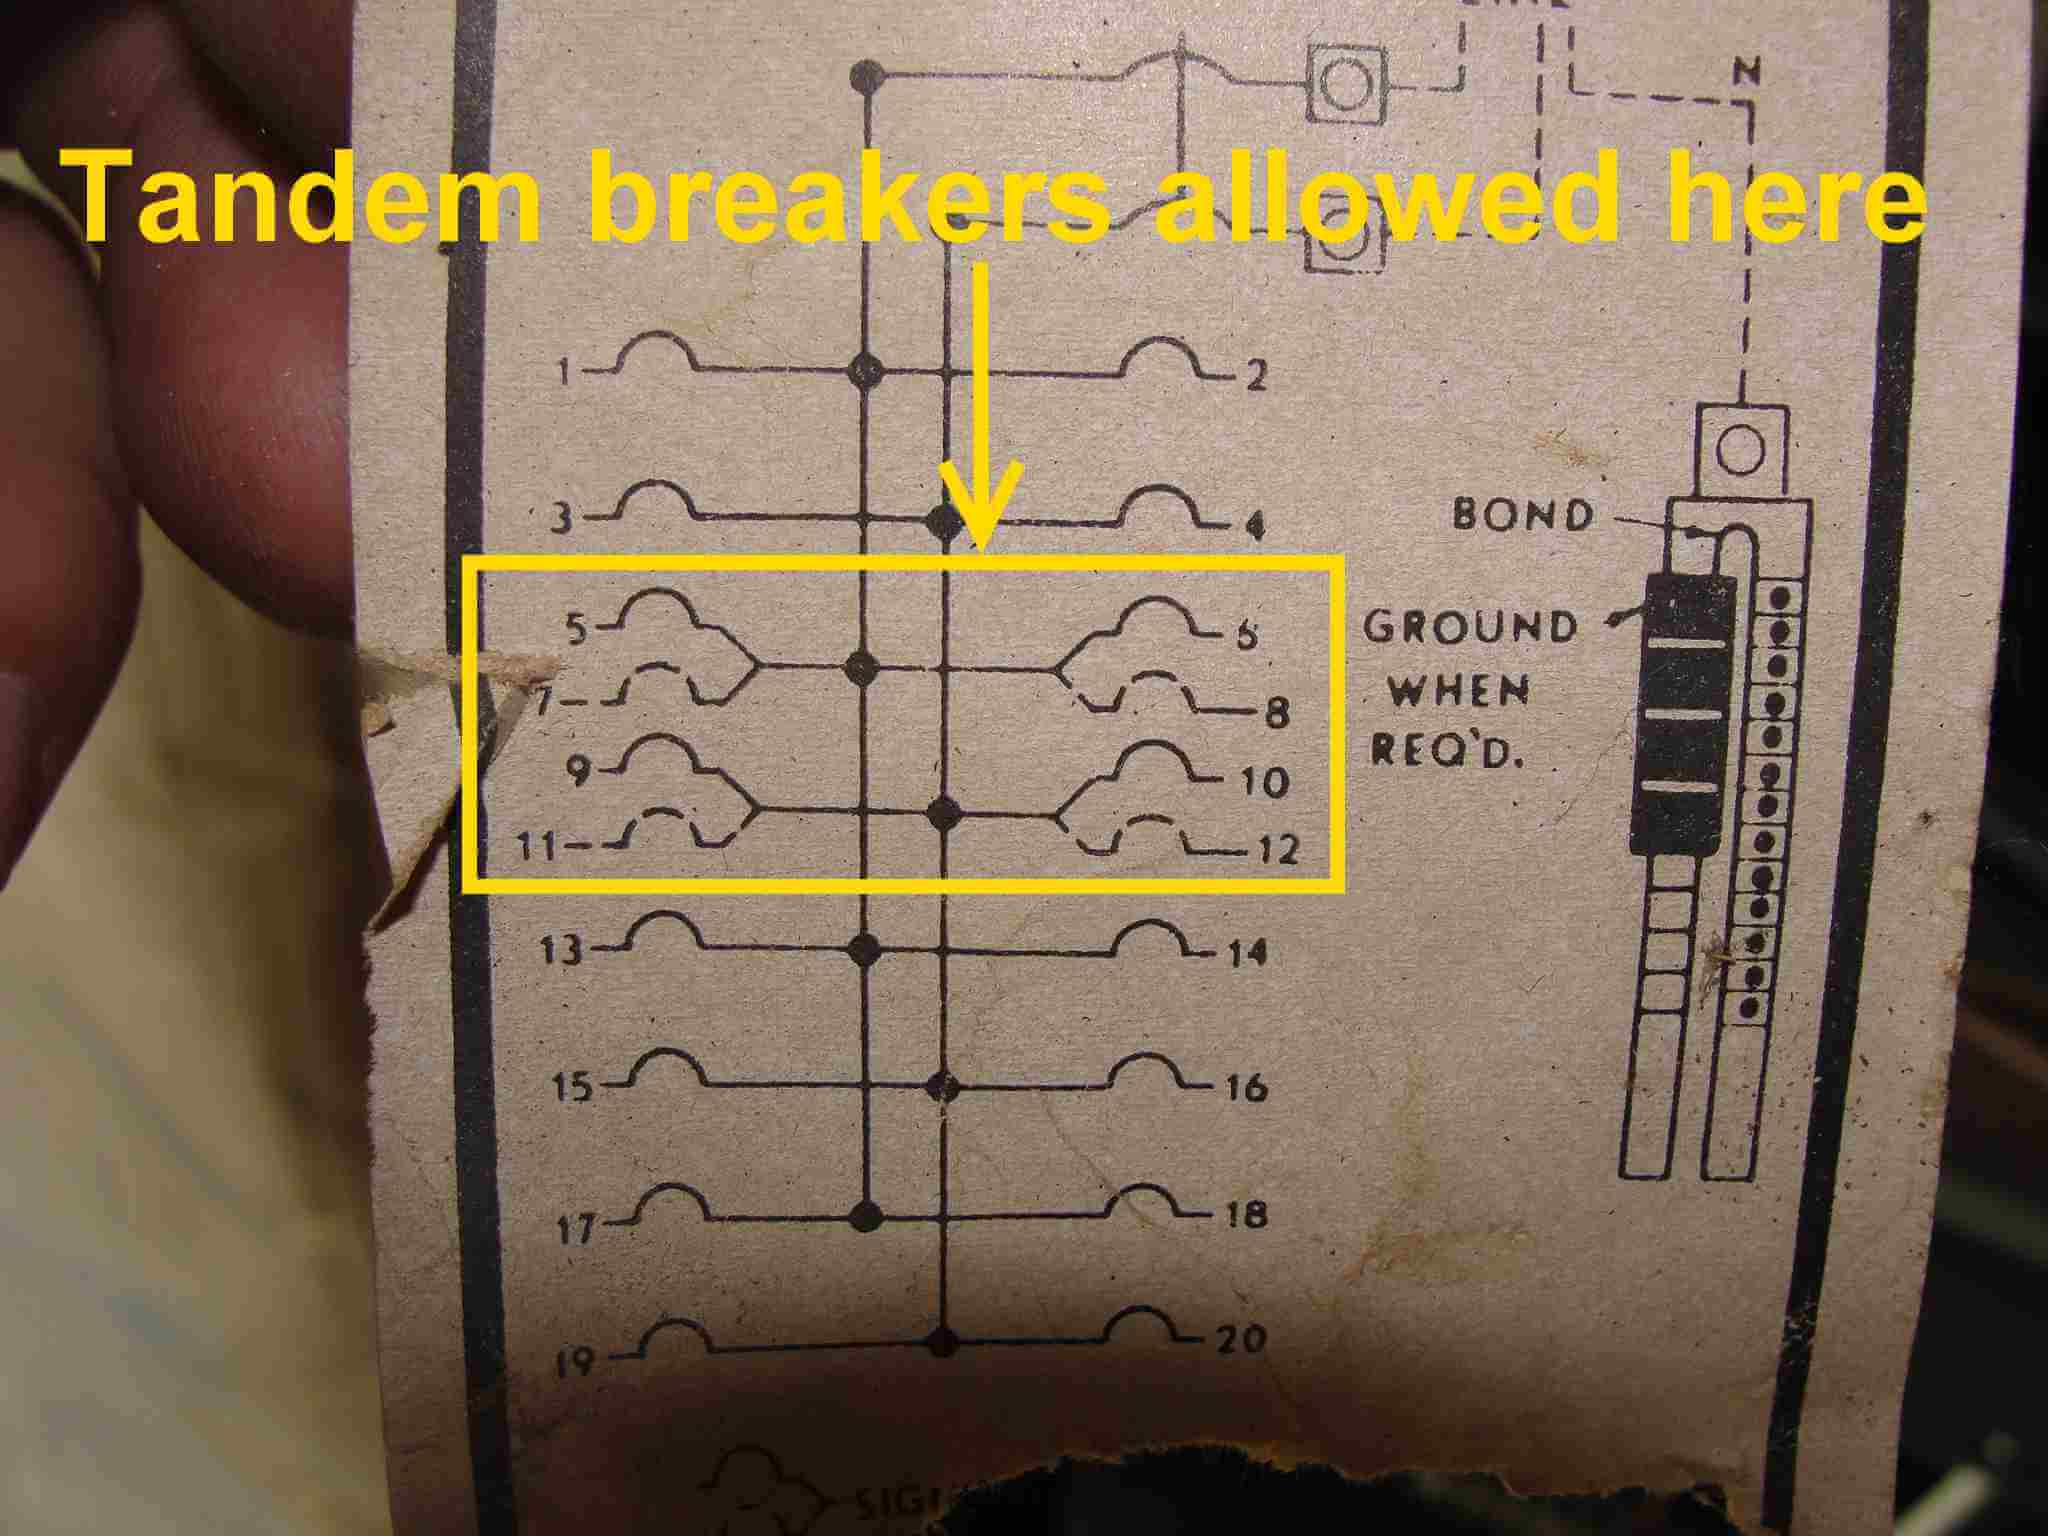 How To Know When Tandem Circuit Breakers Can Be Used Aka Cheater 120v Vs 240v Baseboard Heater Wiring Diagram Panelboard 2